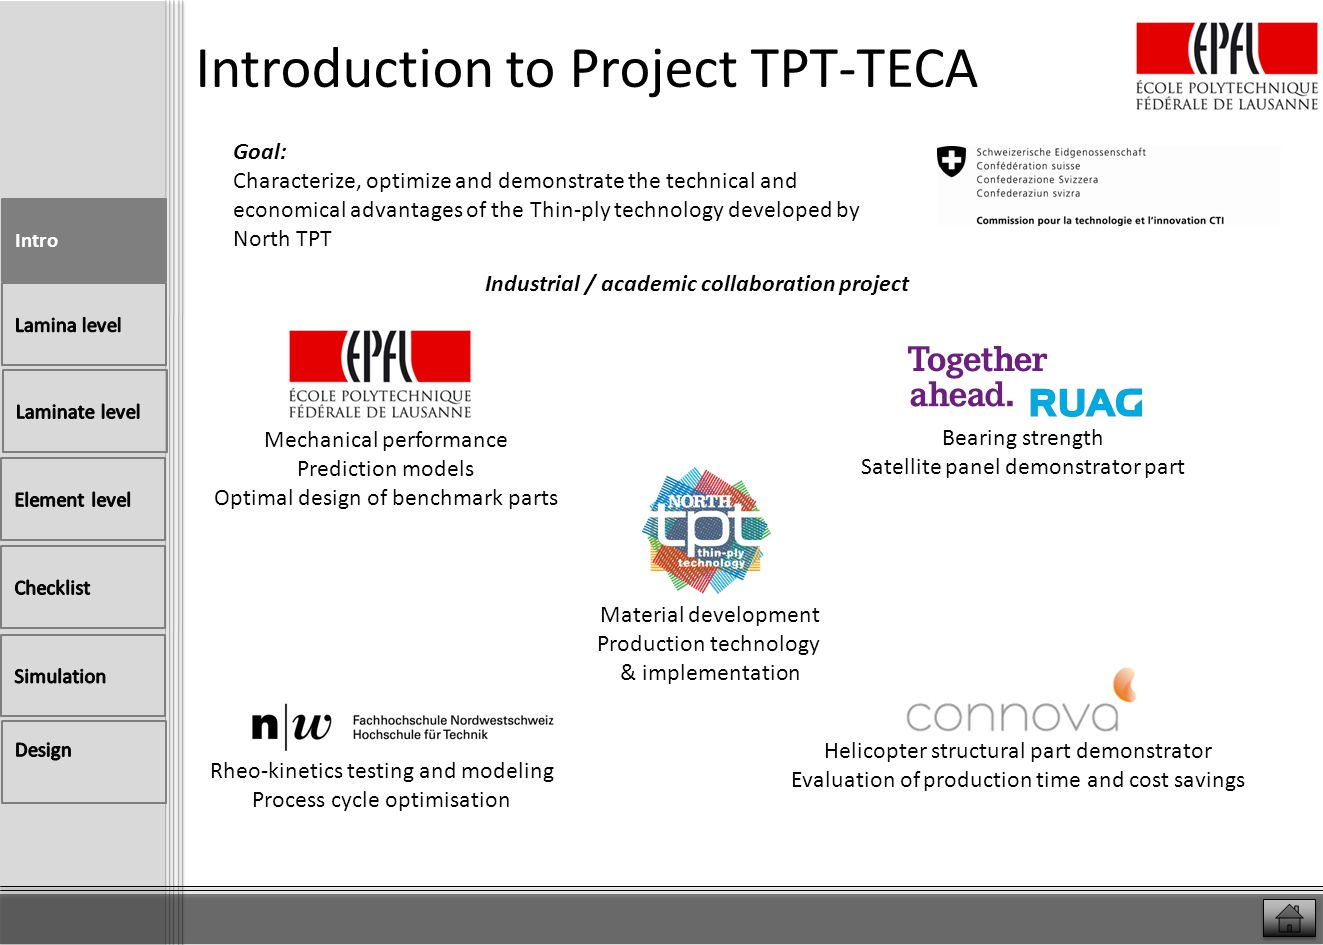 Introduction to Project TPT-TECA TPT-TECA CTI project Today End: march 2014 Project timeline 24 months start March 1st 2012 WP6: vaccuum bag process optimization